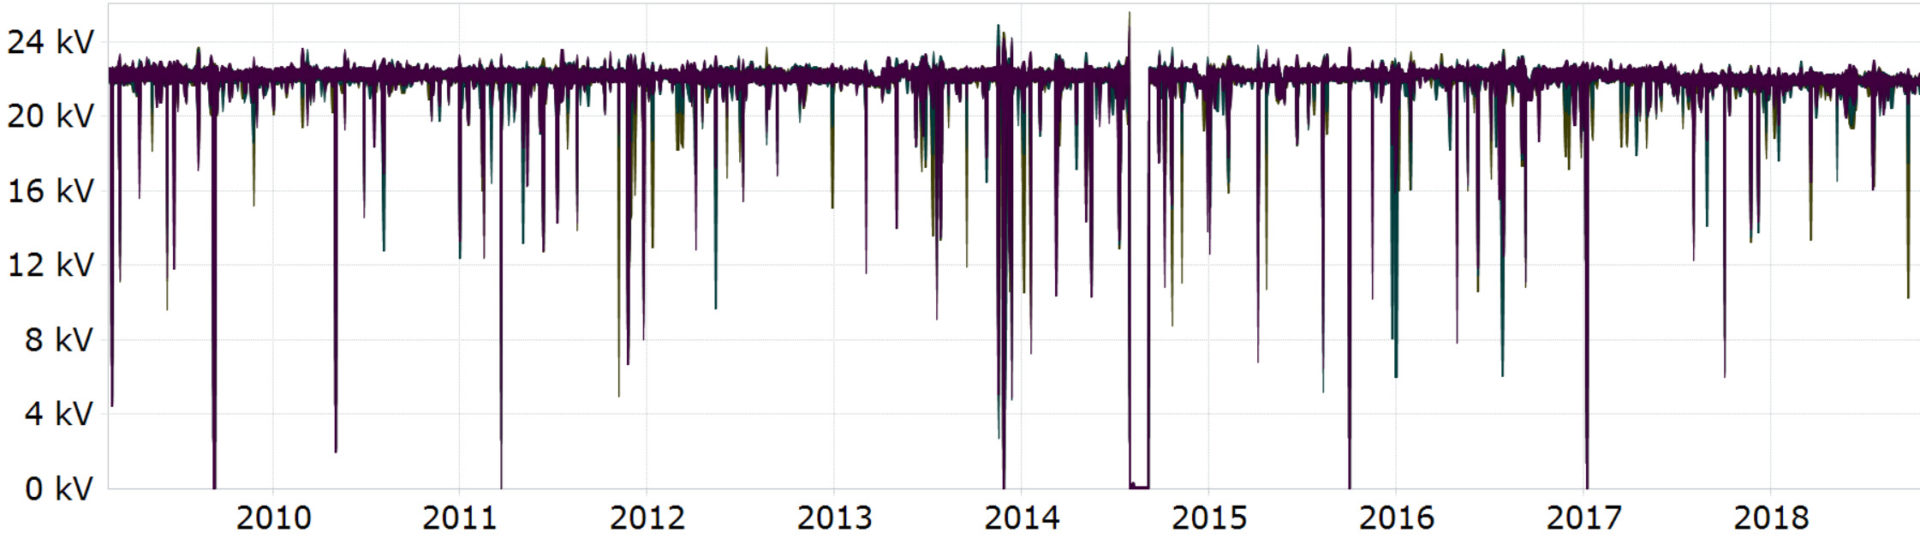 Extract from a 10-year time series of the RMS line voltage in a 22-kW grid, logged by a power quality analyser.